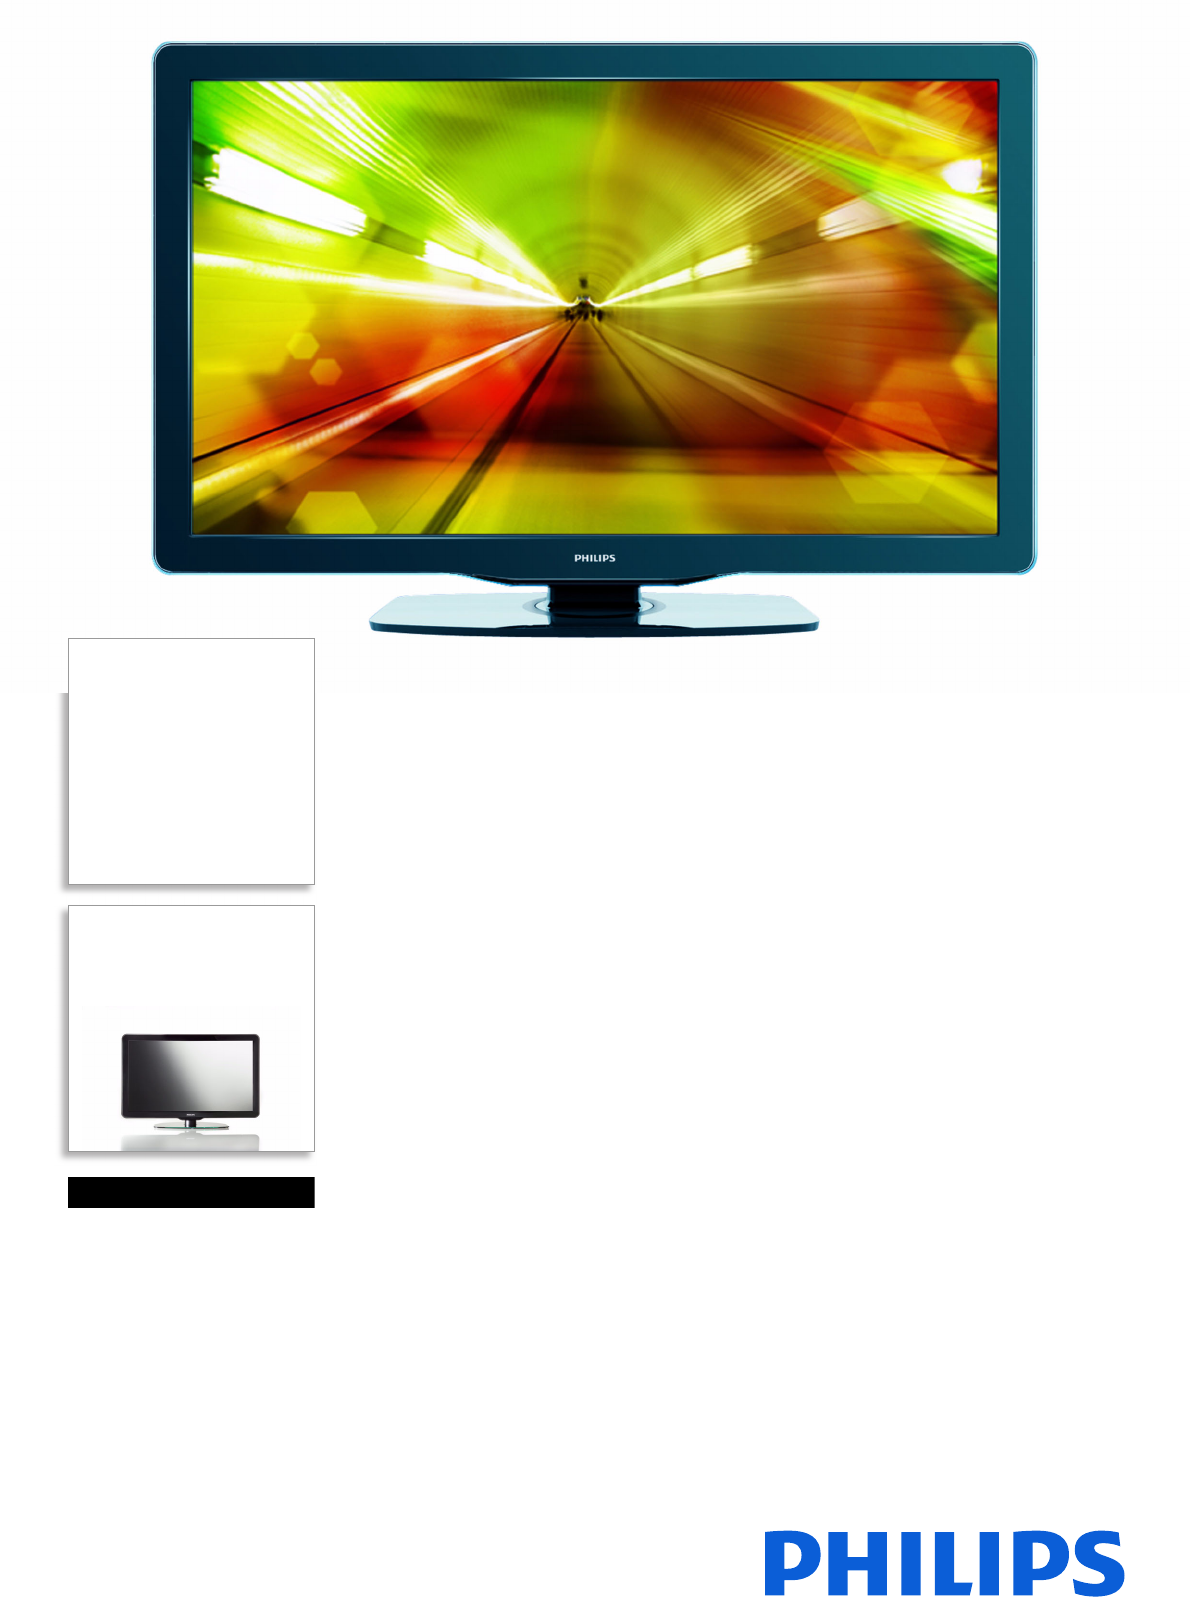 Philips 37HFL5682L/F7 Hospitality LCD TV User Manual Leaflet